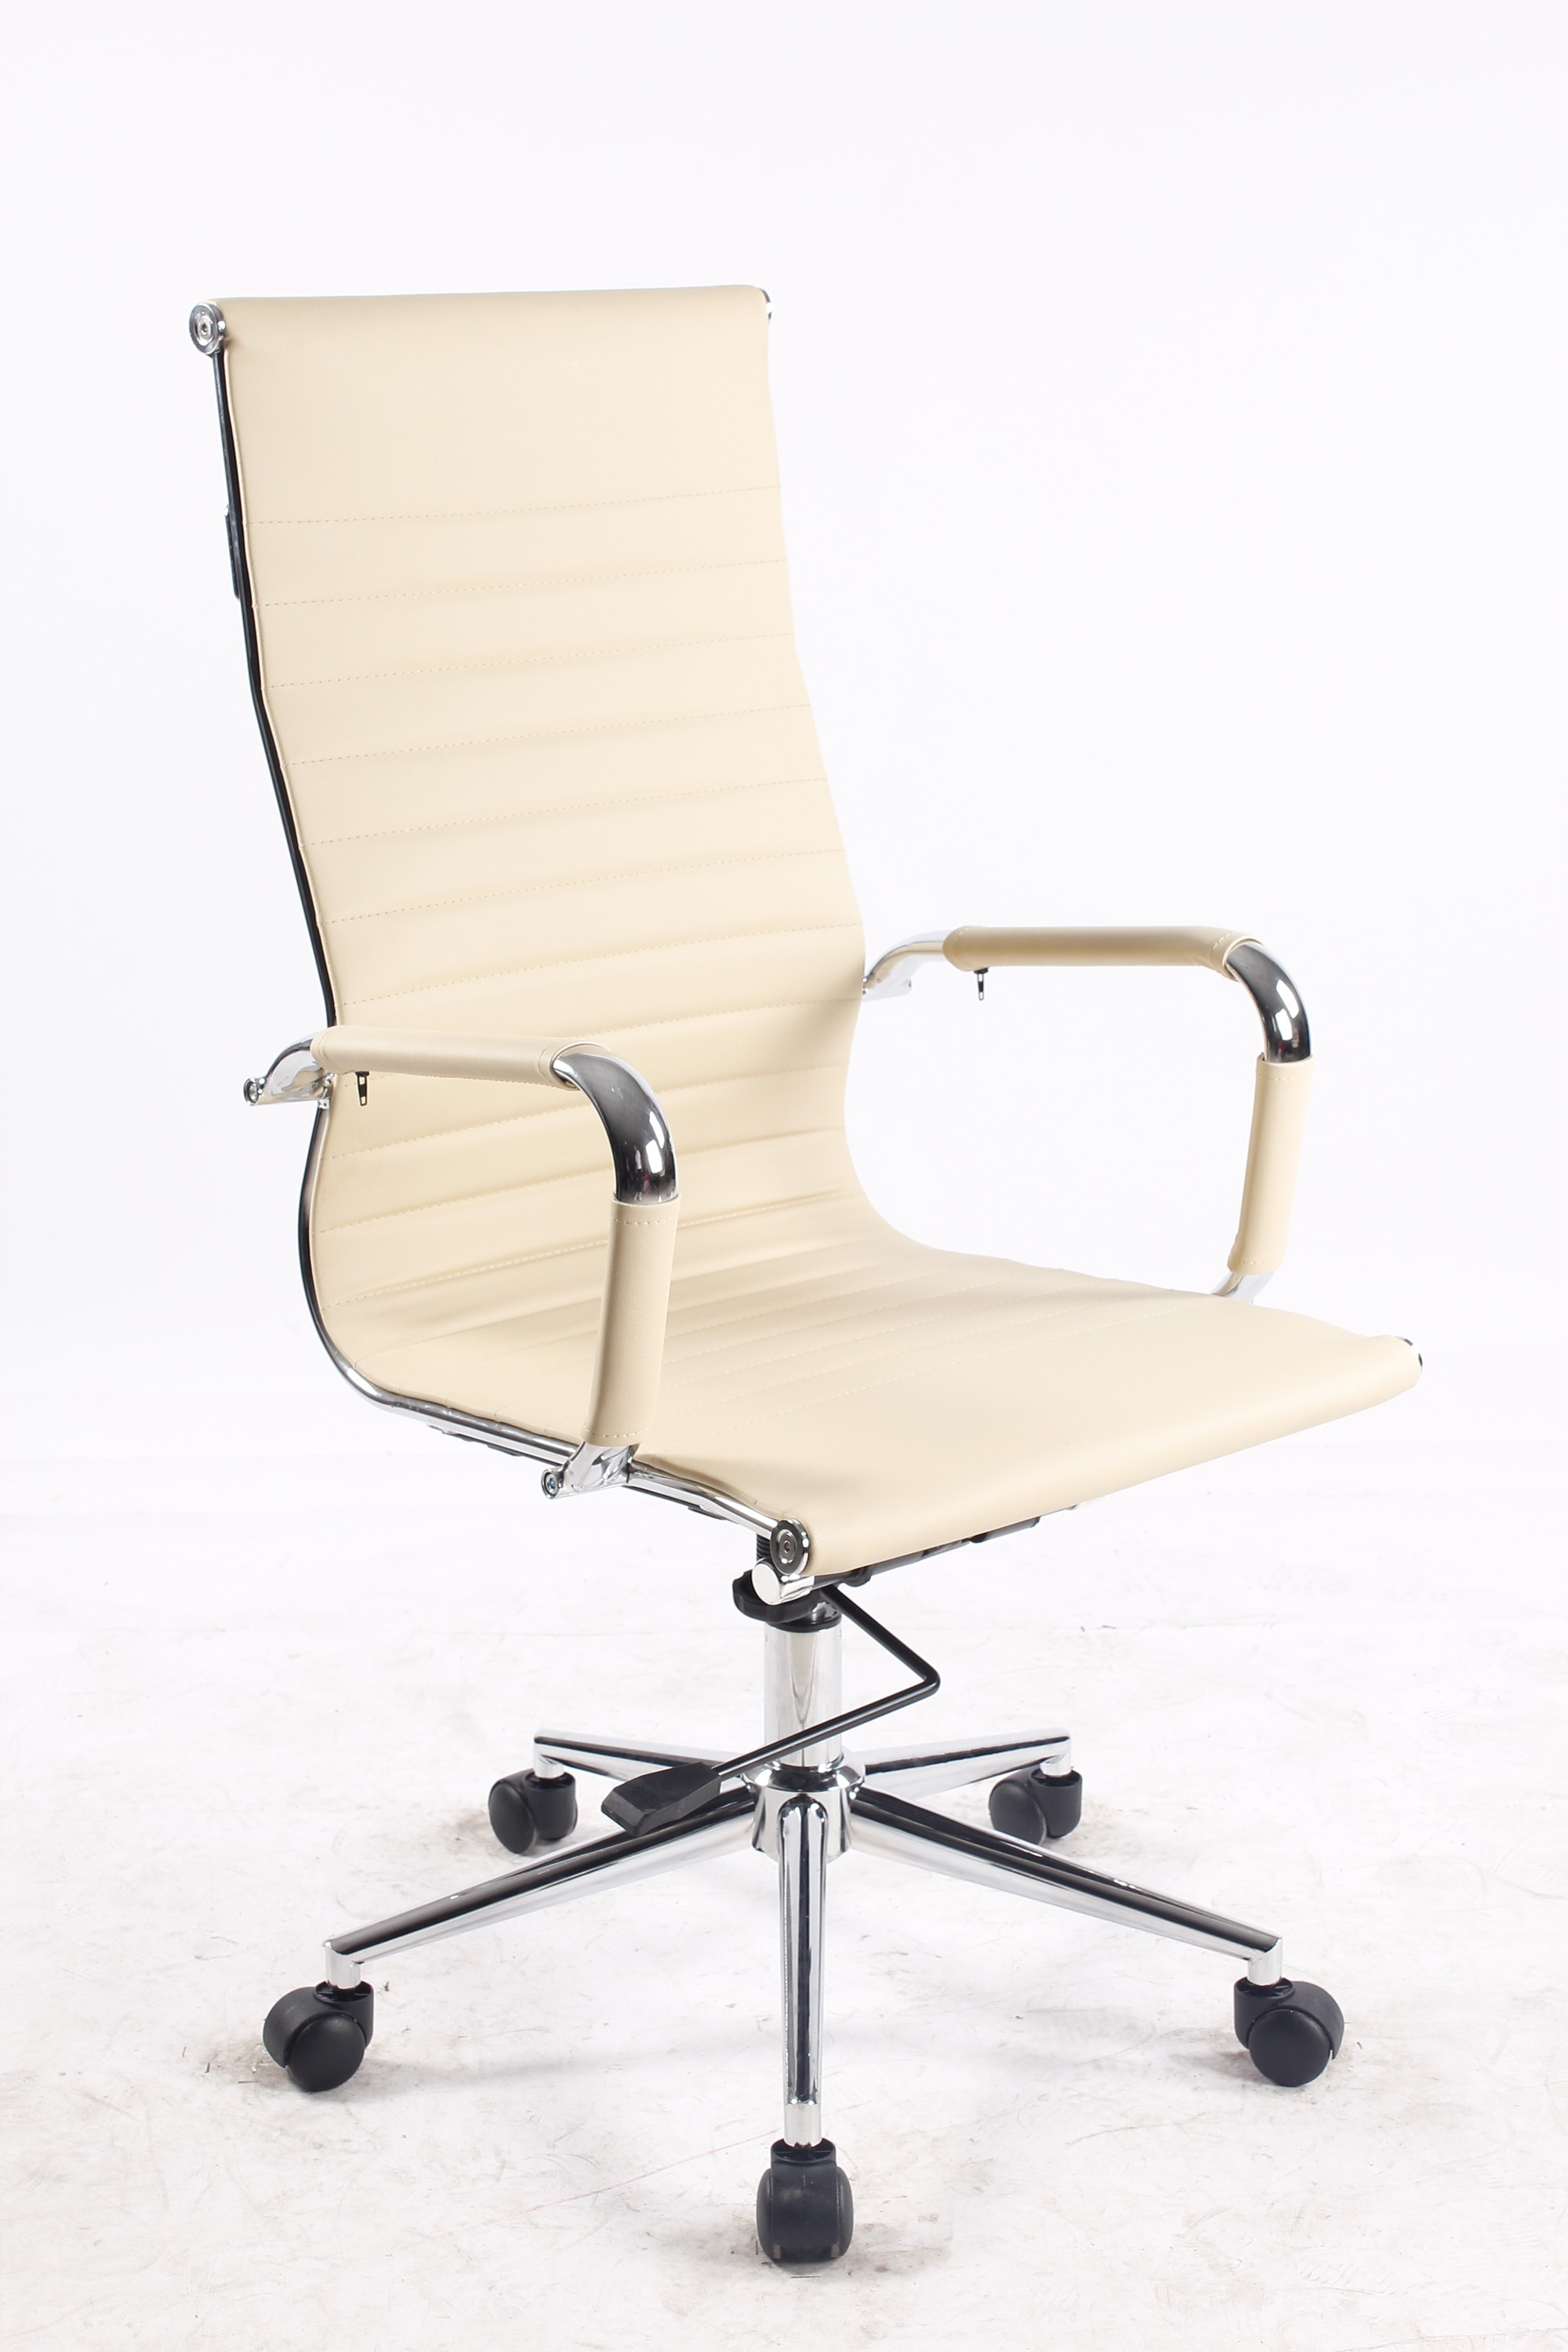 Elitech Modern High Back Ribbed Upholstered Leather Executive Swivel Office Chair With Metal Frame, Tilt and Chrome Base